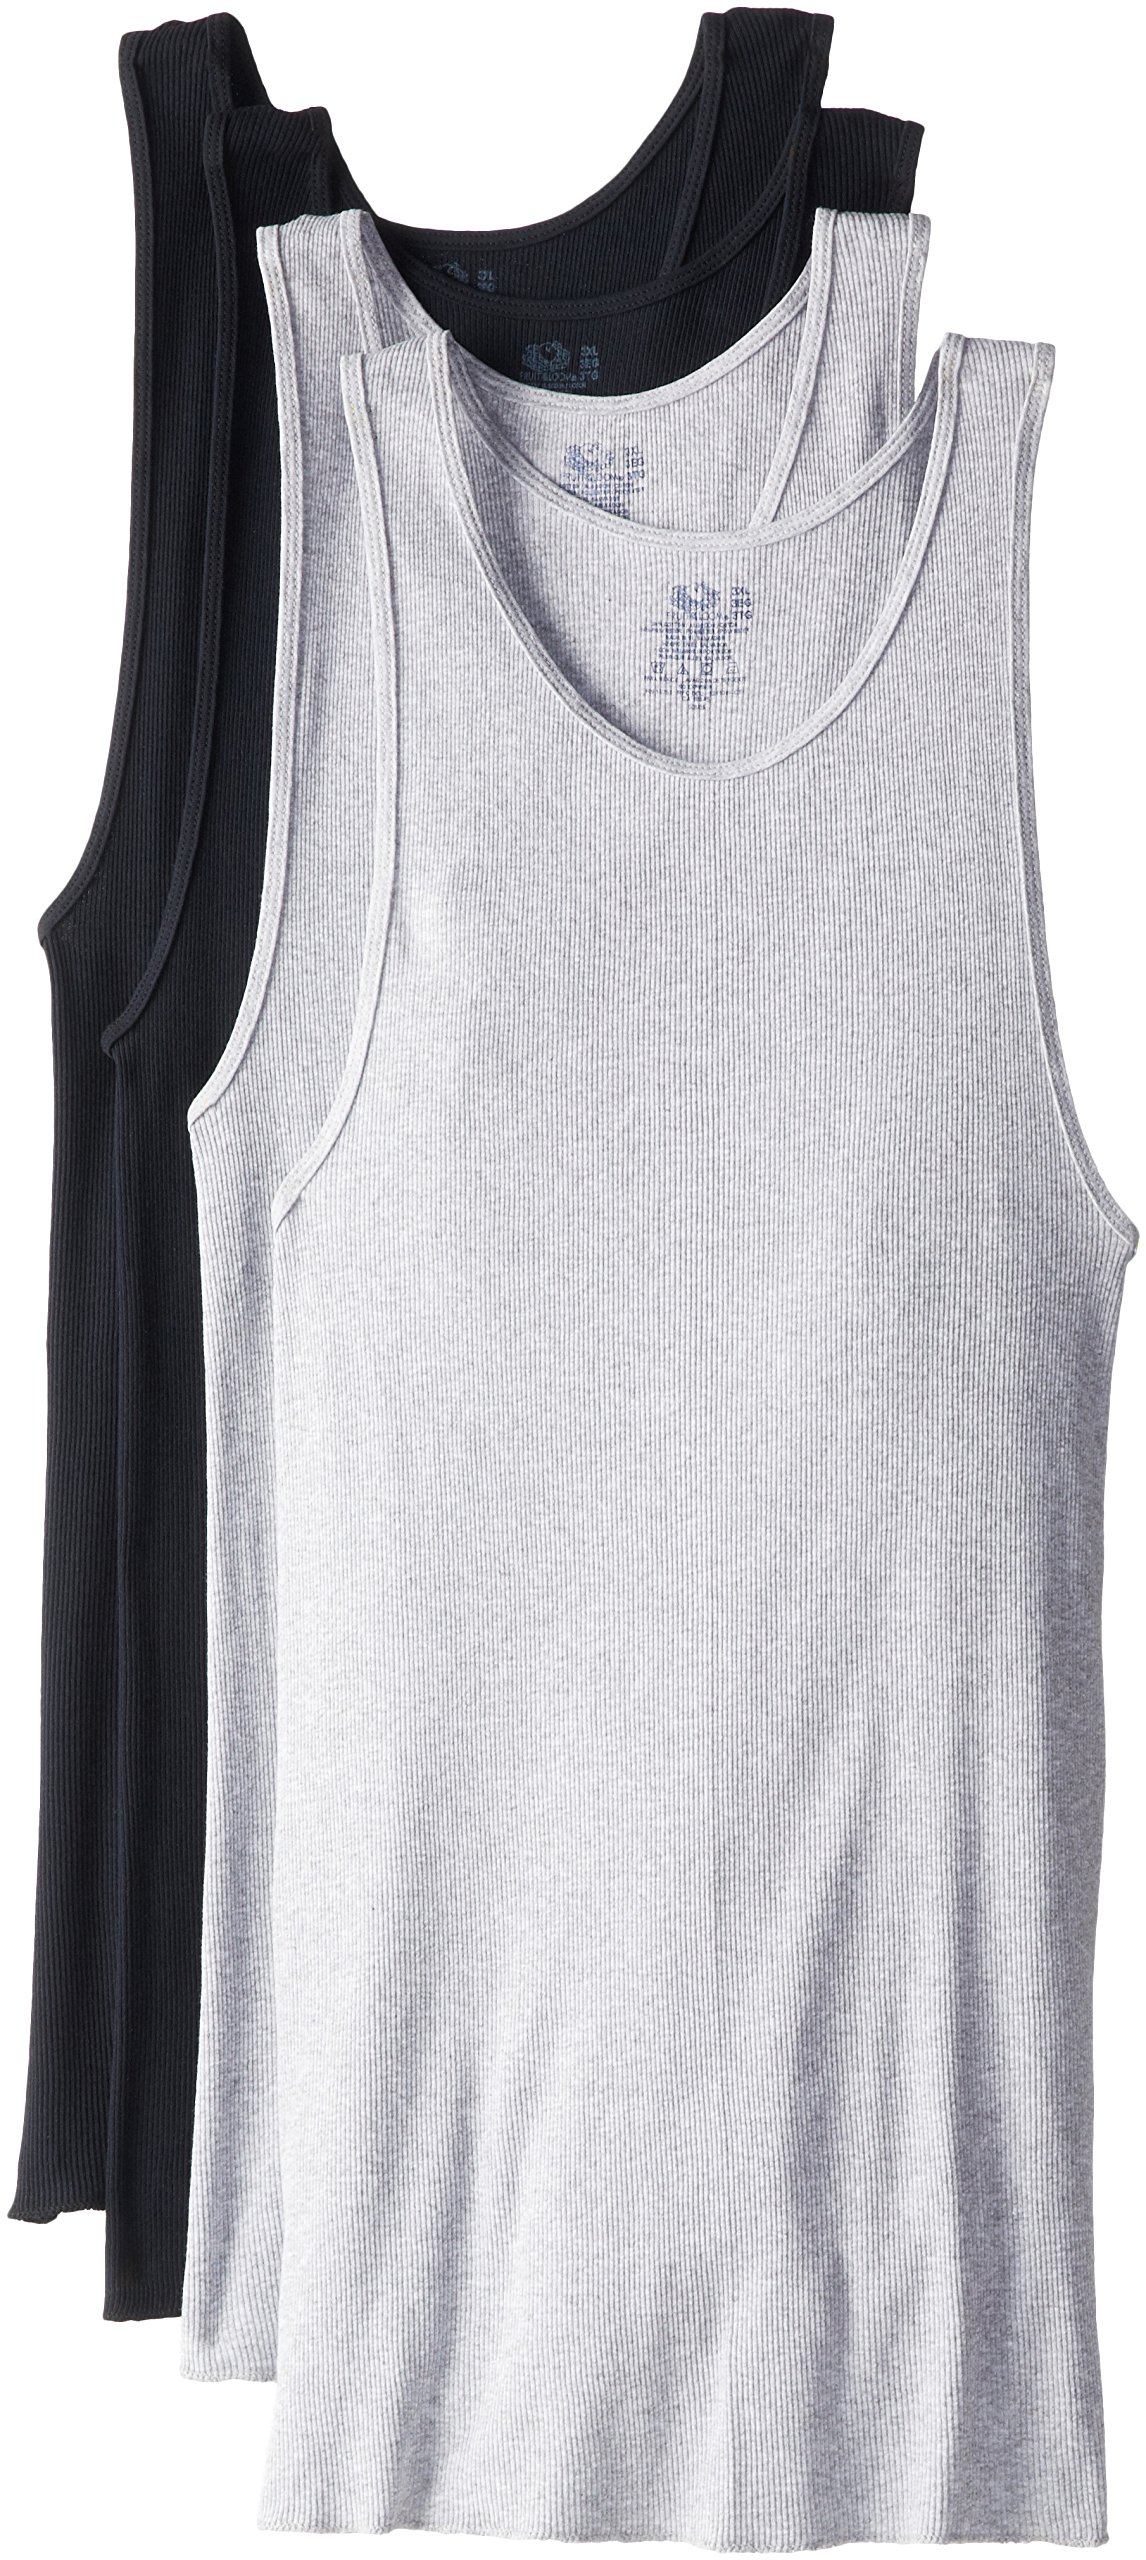 Fruit of the Loom Men's Big Contour Fit A-Shirt, Black/Gray, 3X-Large(Pack of 4)